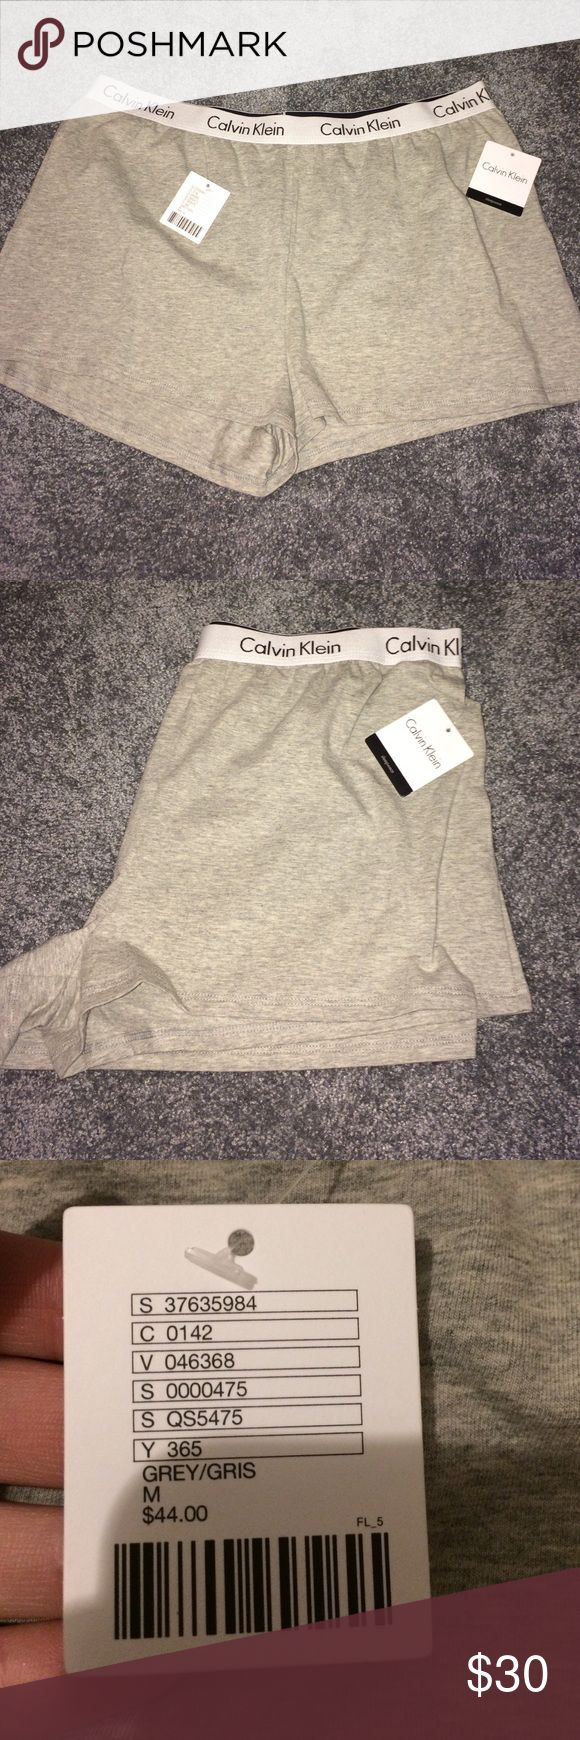 ✨LAST CHANCE SALE✨ Grey Calvin klein sleep shorts Nwt grey Calvin Klein sleep shorts. Size medium. Has the iconic thick waistband. Soft comfy cotton material. Super popular right now! Wish these fit I need a small. Calvin Klein Underwear Intimates & Sleepwear Pajamas